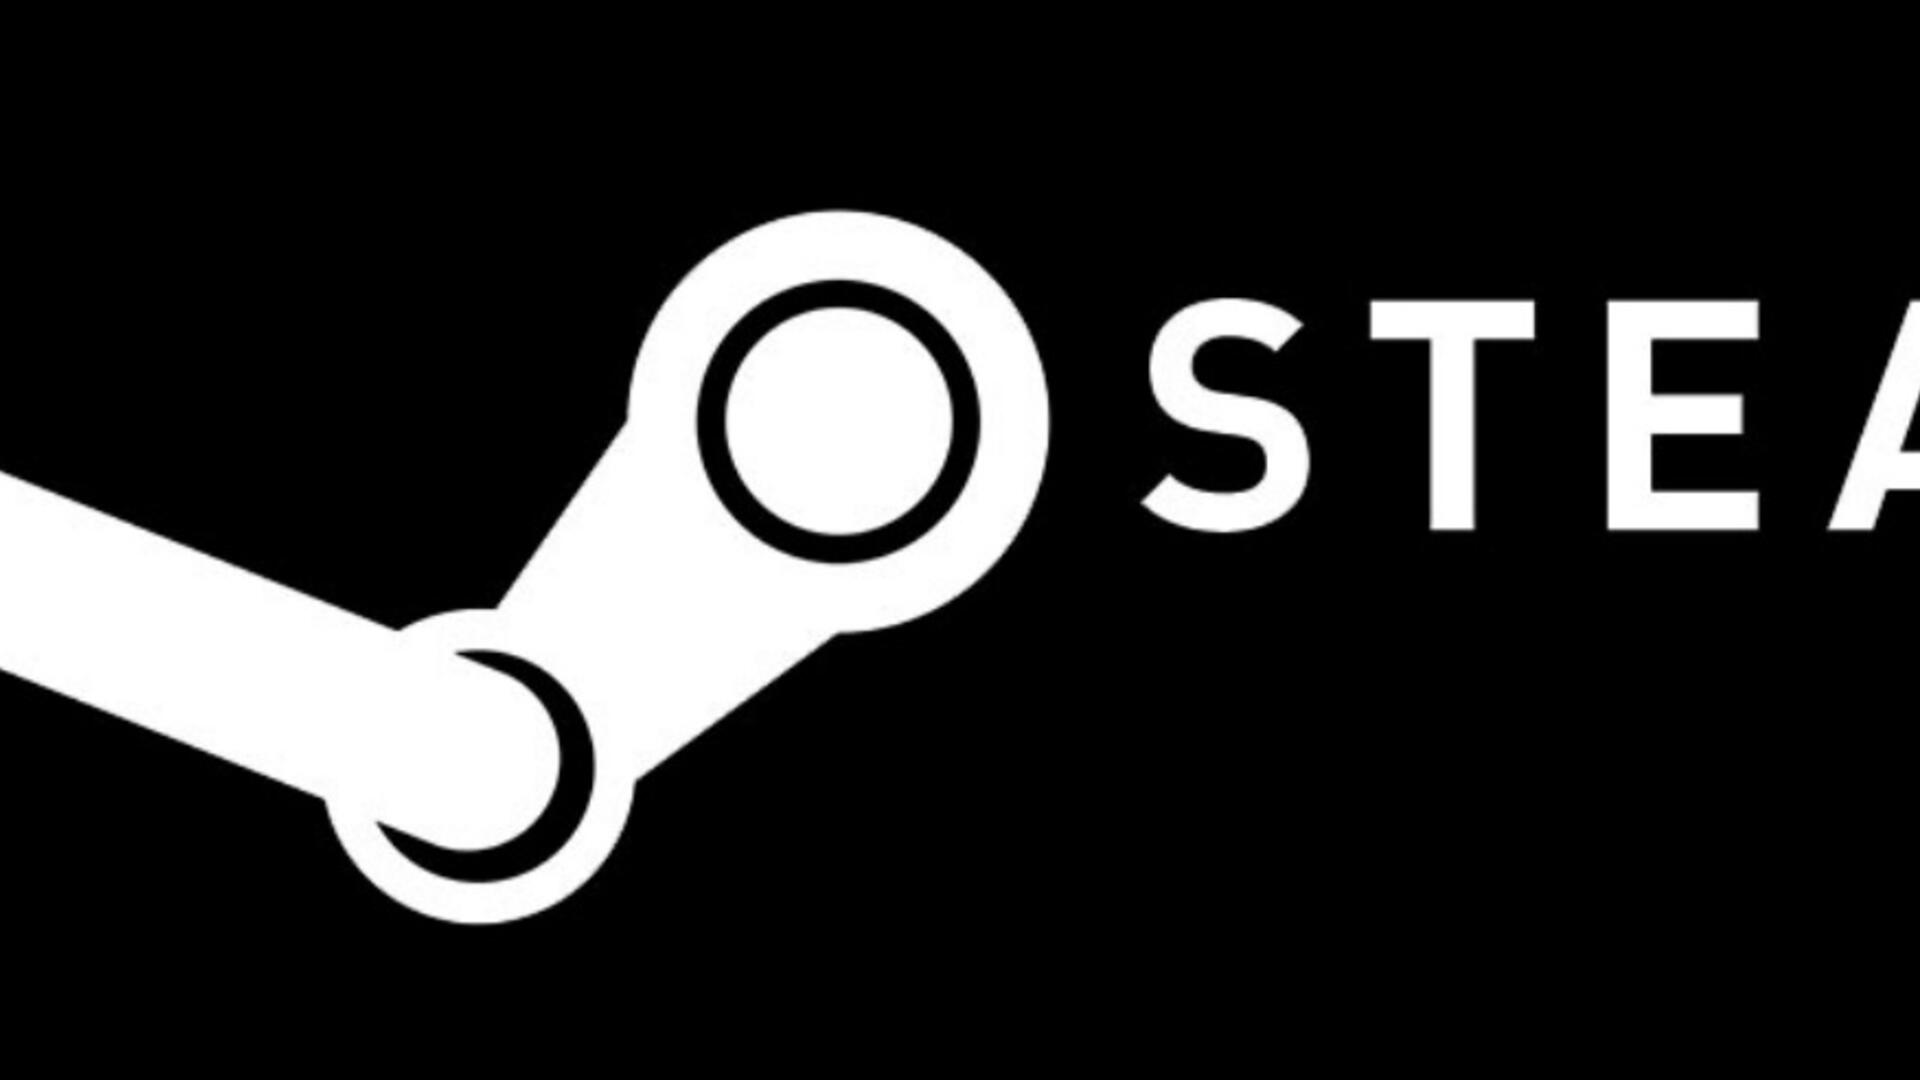 37% of Steam Games Go Unplayed, Valve Titles Remain Most Popular